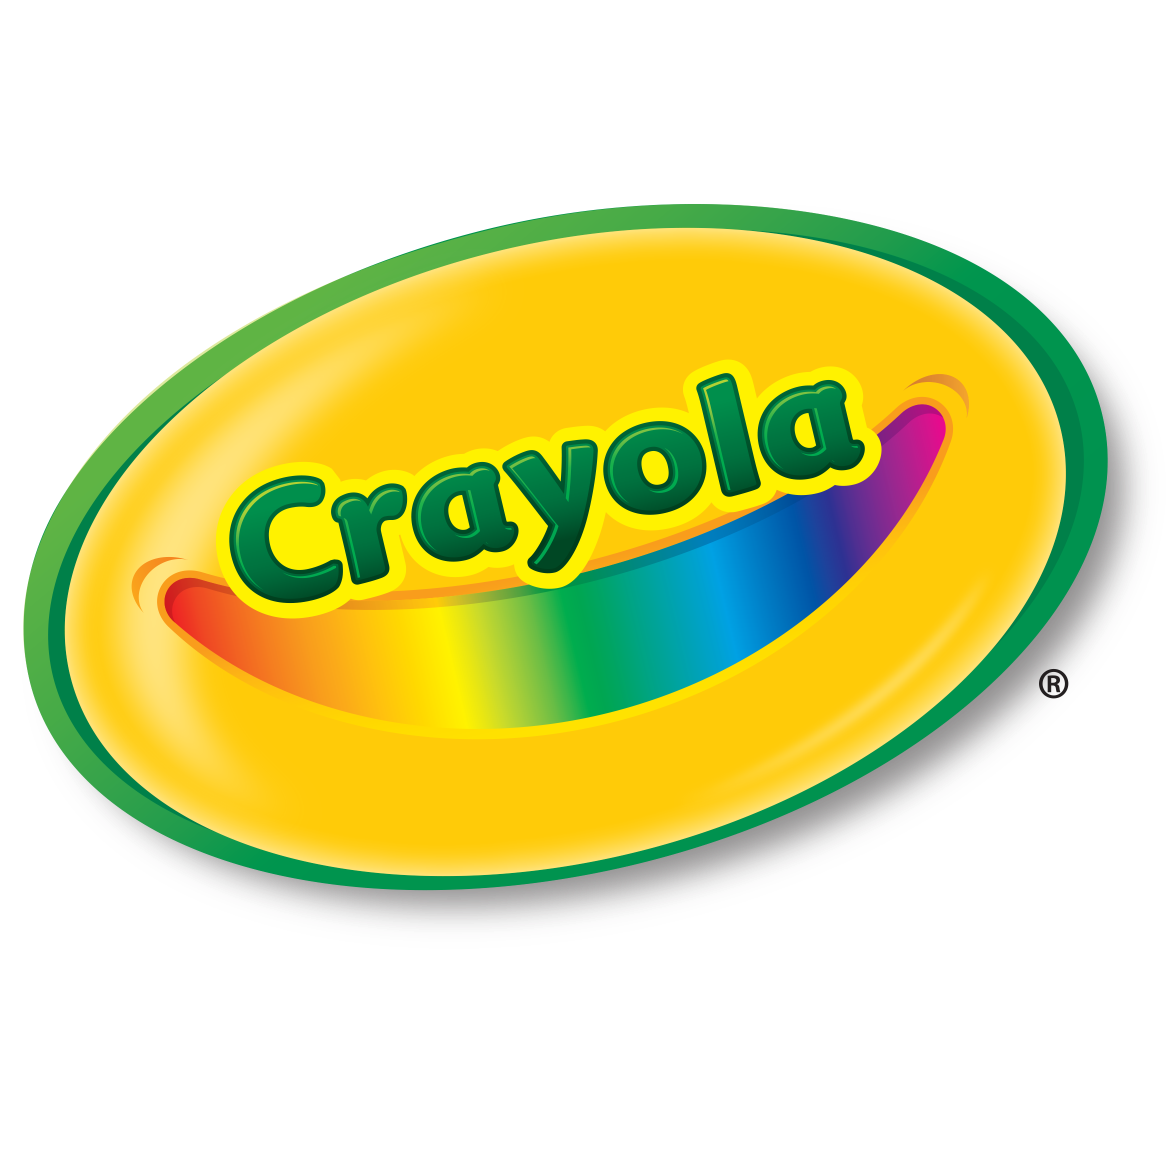 Crayola Emoji Maker Review: | Blog Submissions | Pinterest